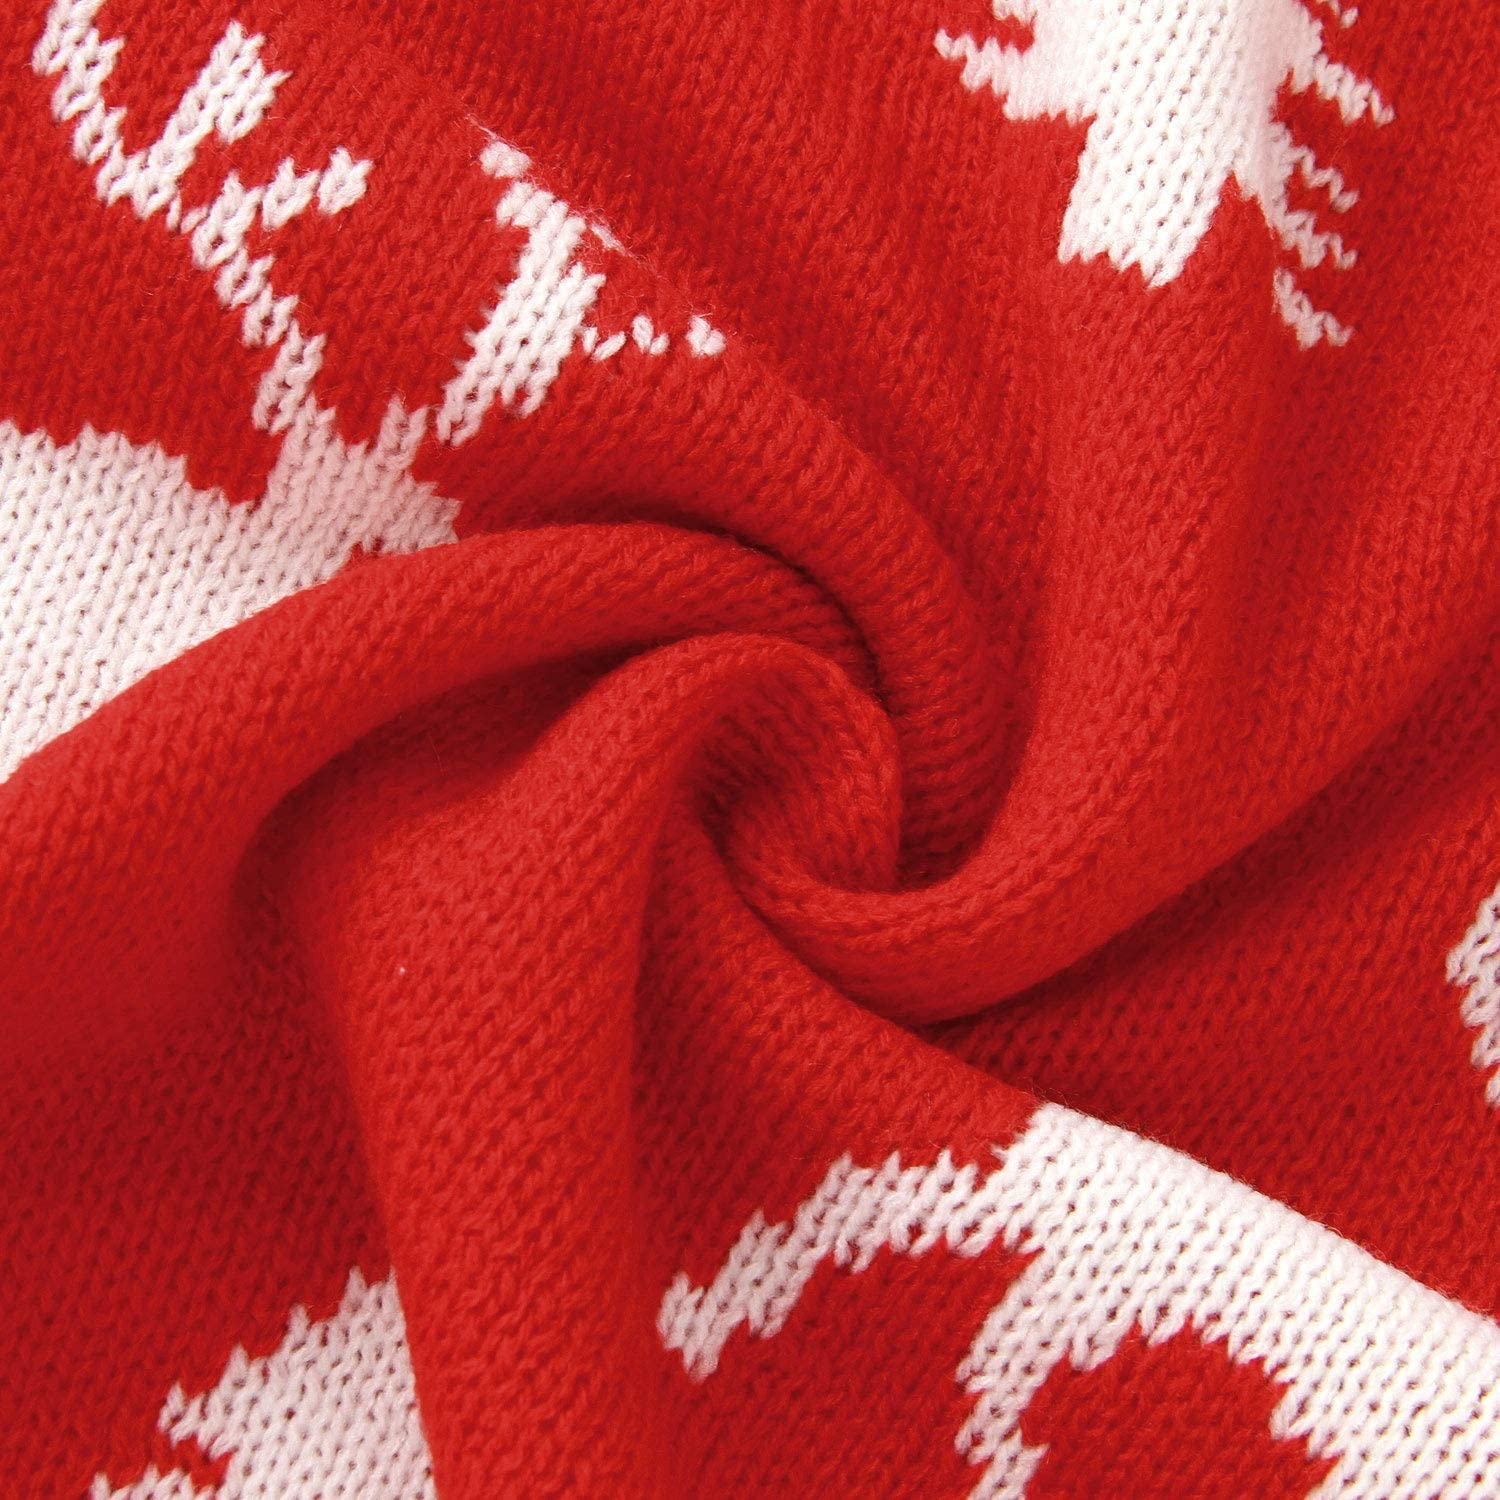 100 x 80cm mimixiong Baby Blanket Christmas Knitted Reindeer Blankets Red